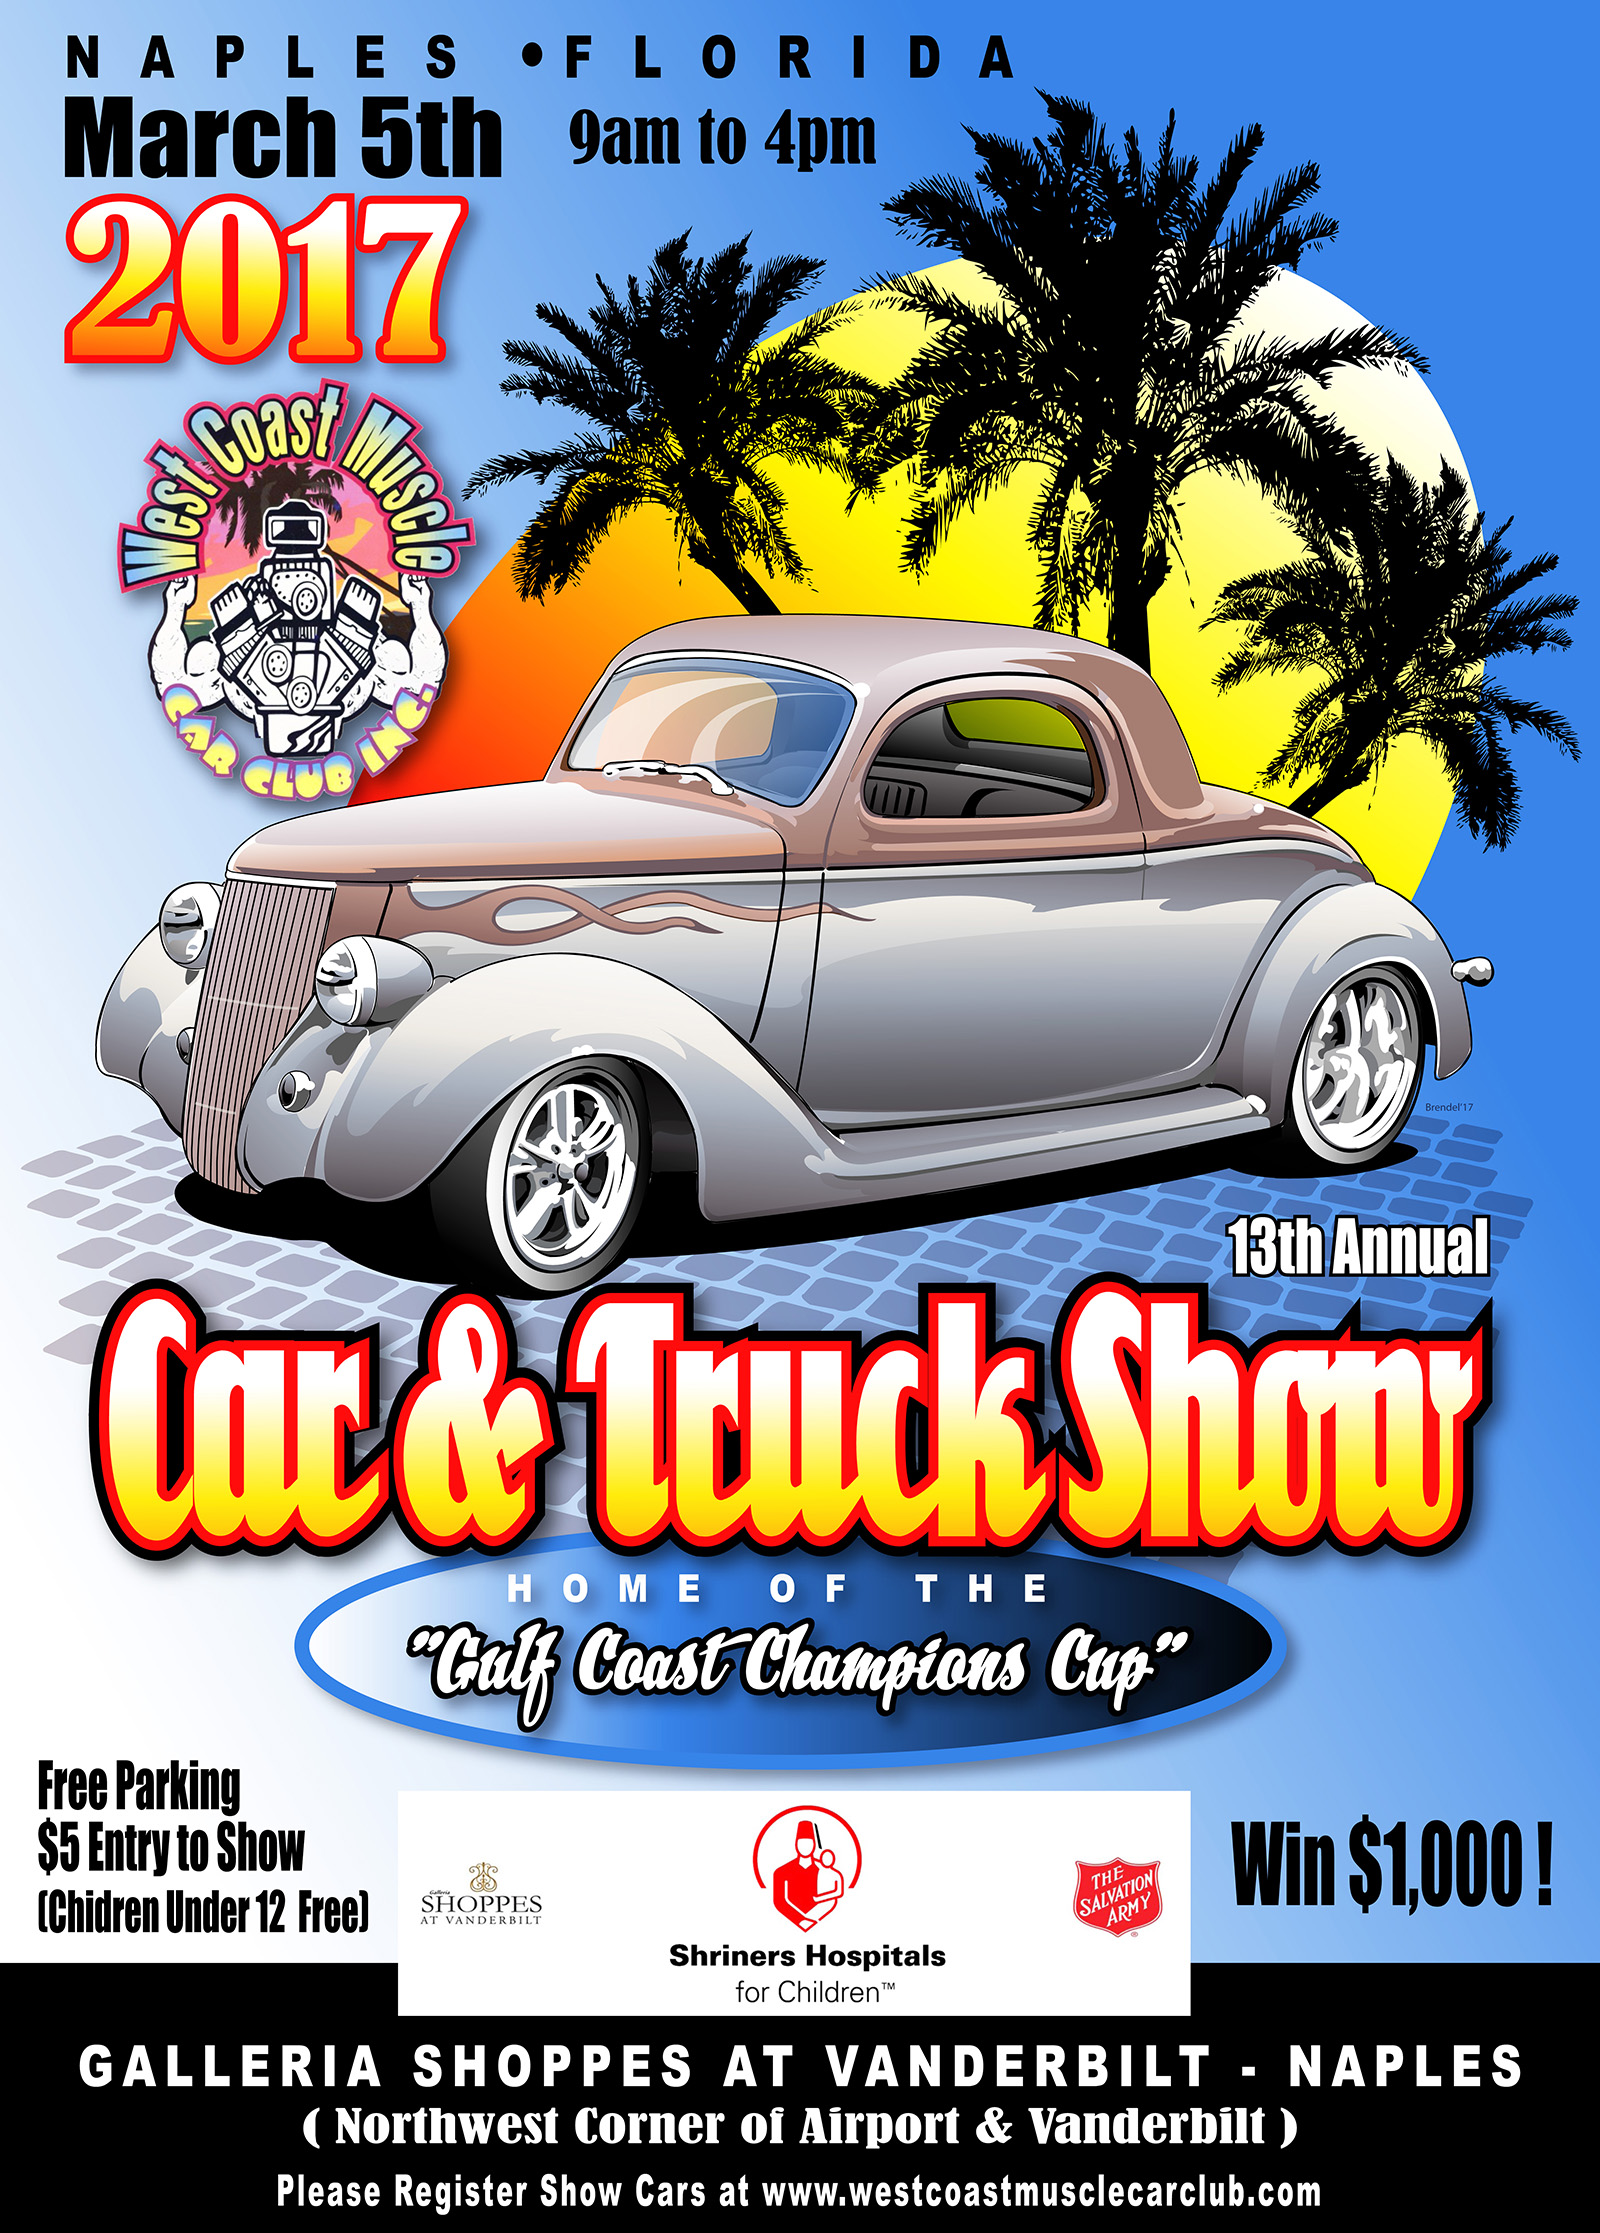 Naples Annual Car Show 2016